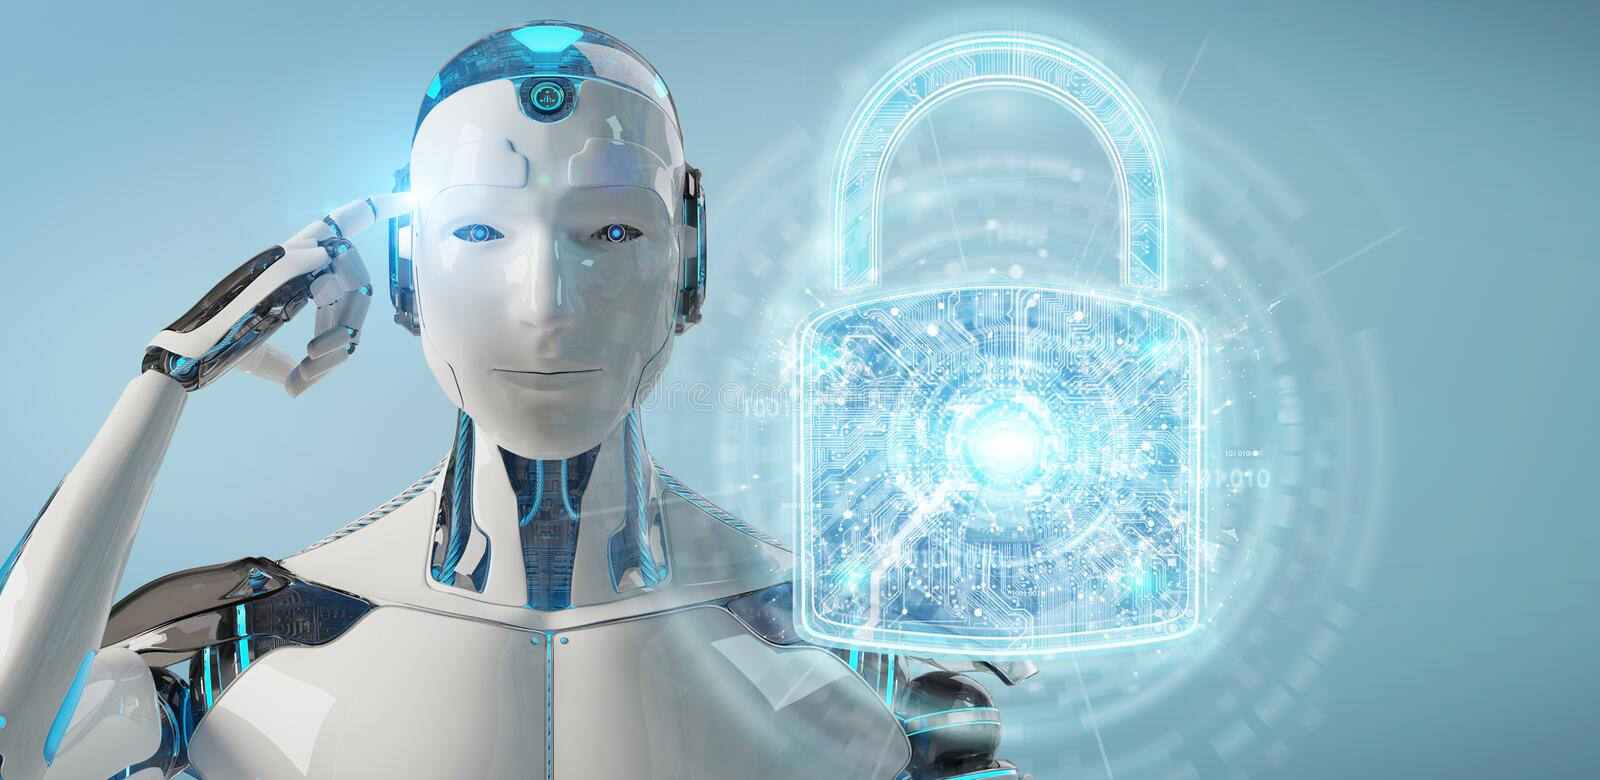 Web security protection interface used by robot 3D rendering. Web security protection interface used by robot on blurred background 3D rendering vector illustration